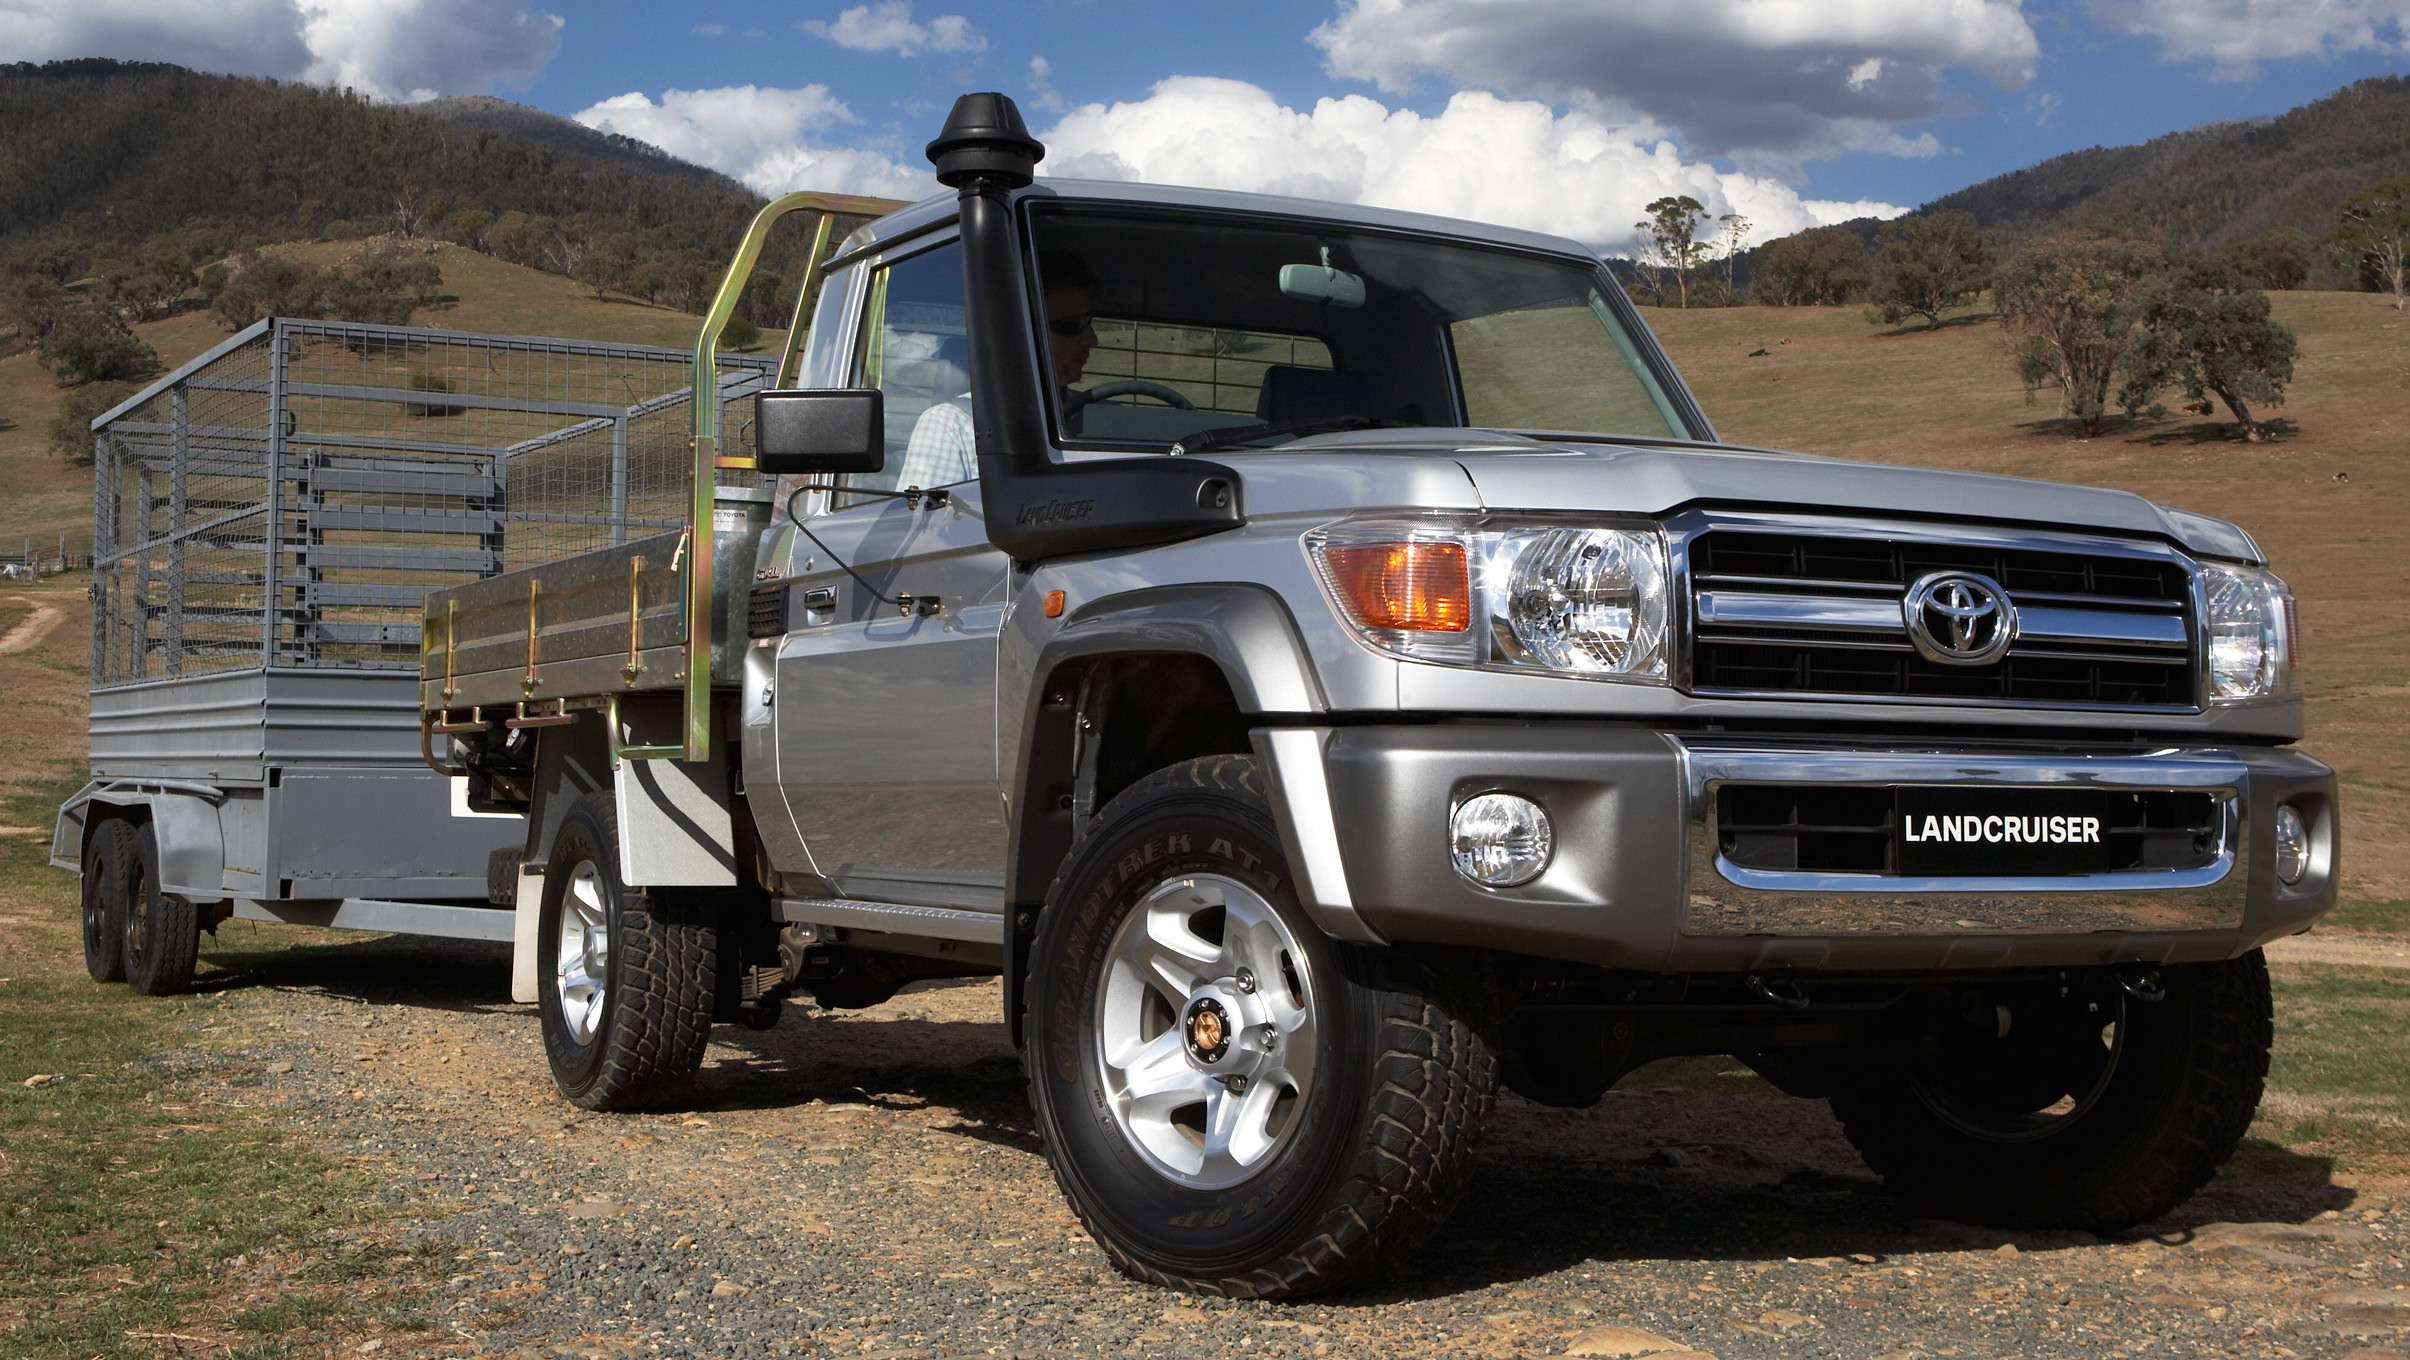 Toyota Land Cruiser 70 Set To Be 5 Star Ancap Rated Paul Tan Image 2015 383176